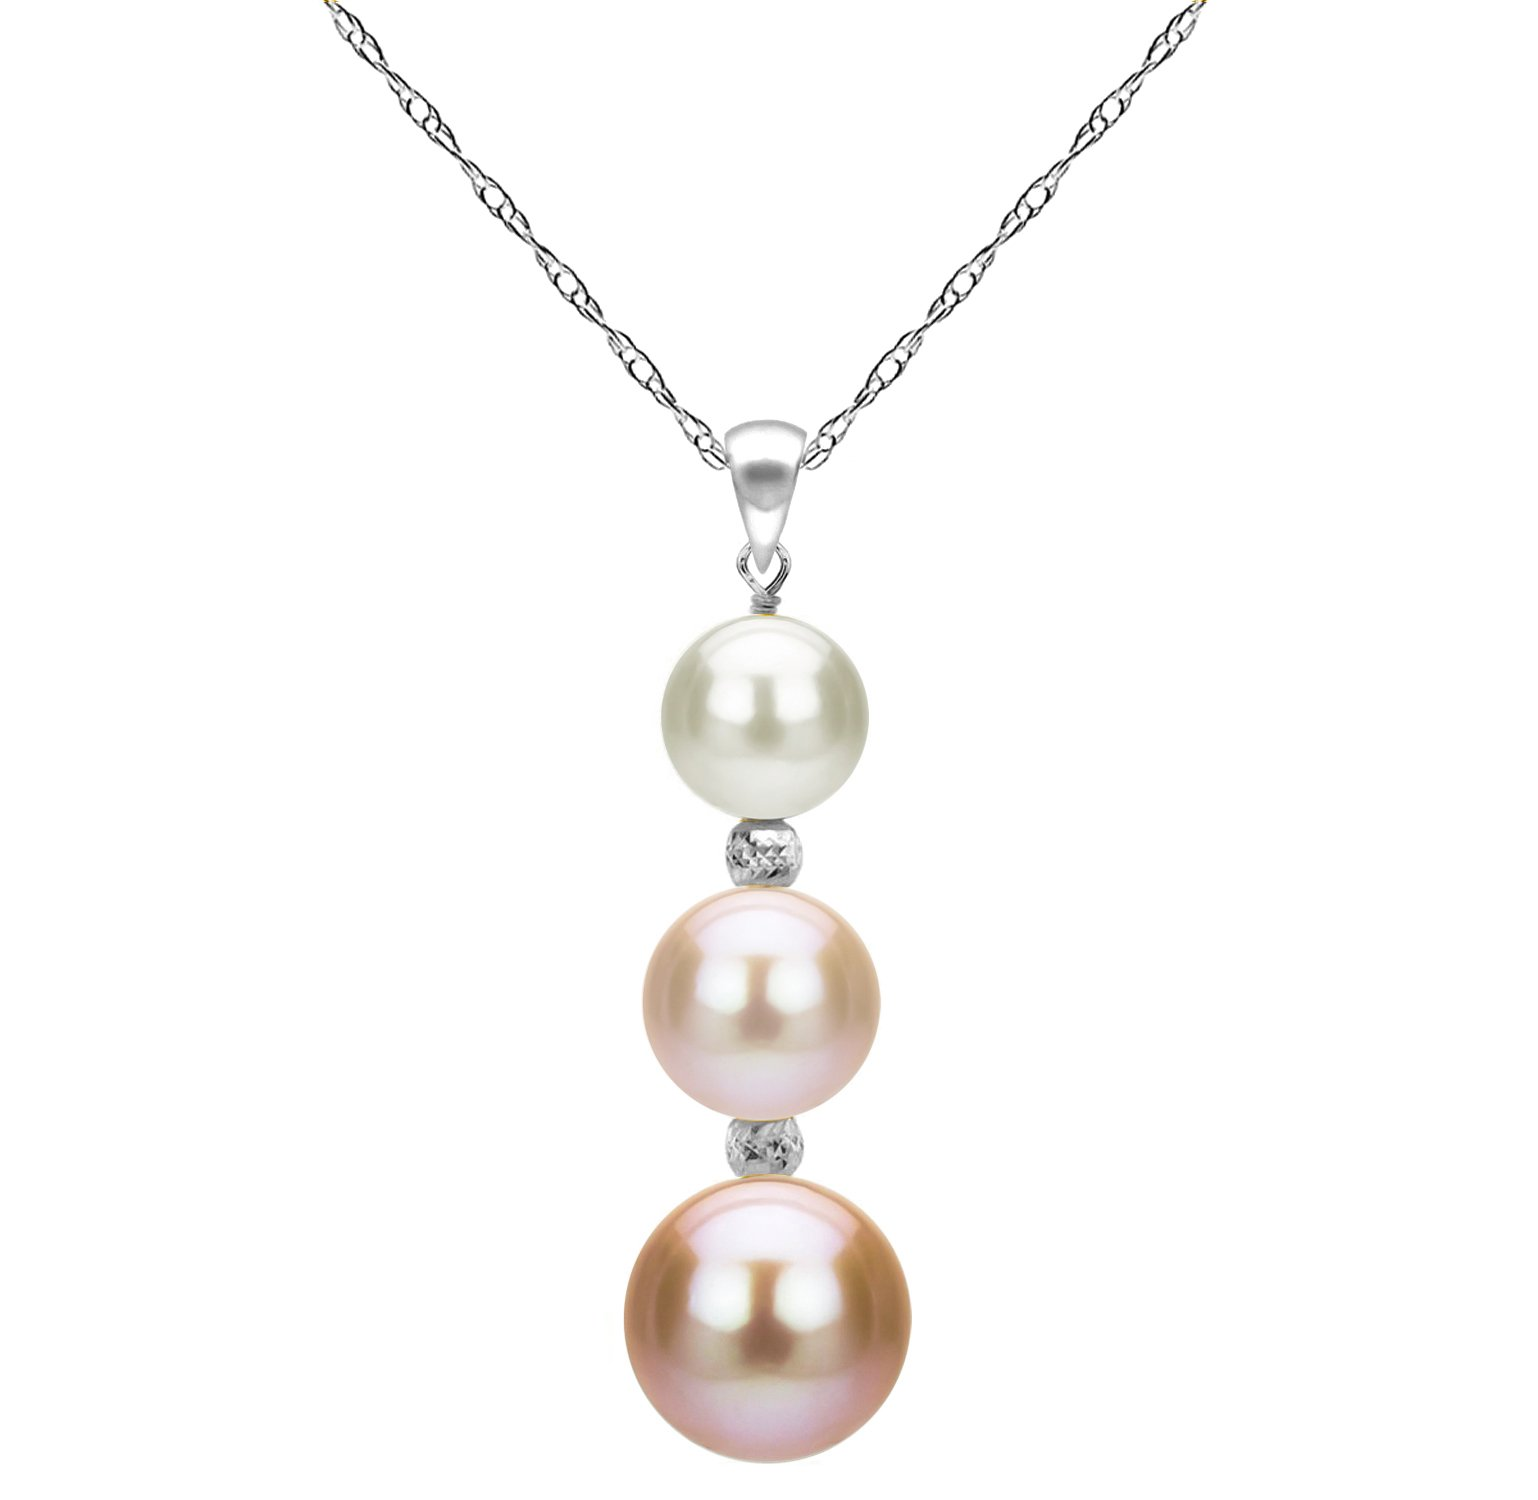 Freshwater Cultured Multi-pink Pearl Necklace 14K White Gold Pendant Chain Anniversary Gift 18 inch